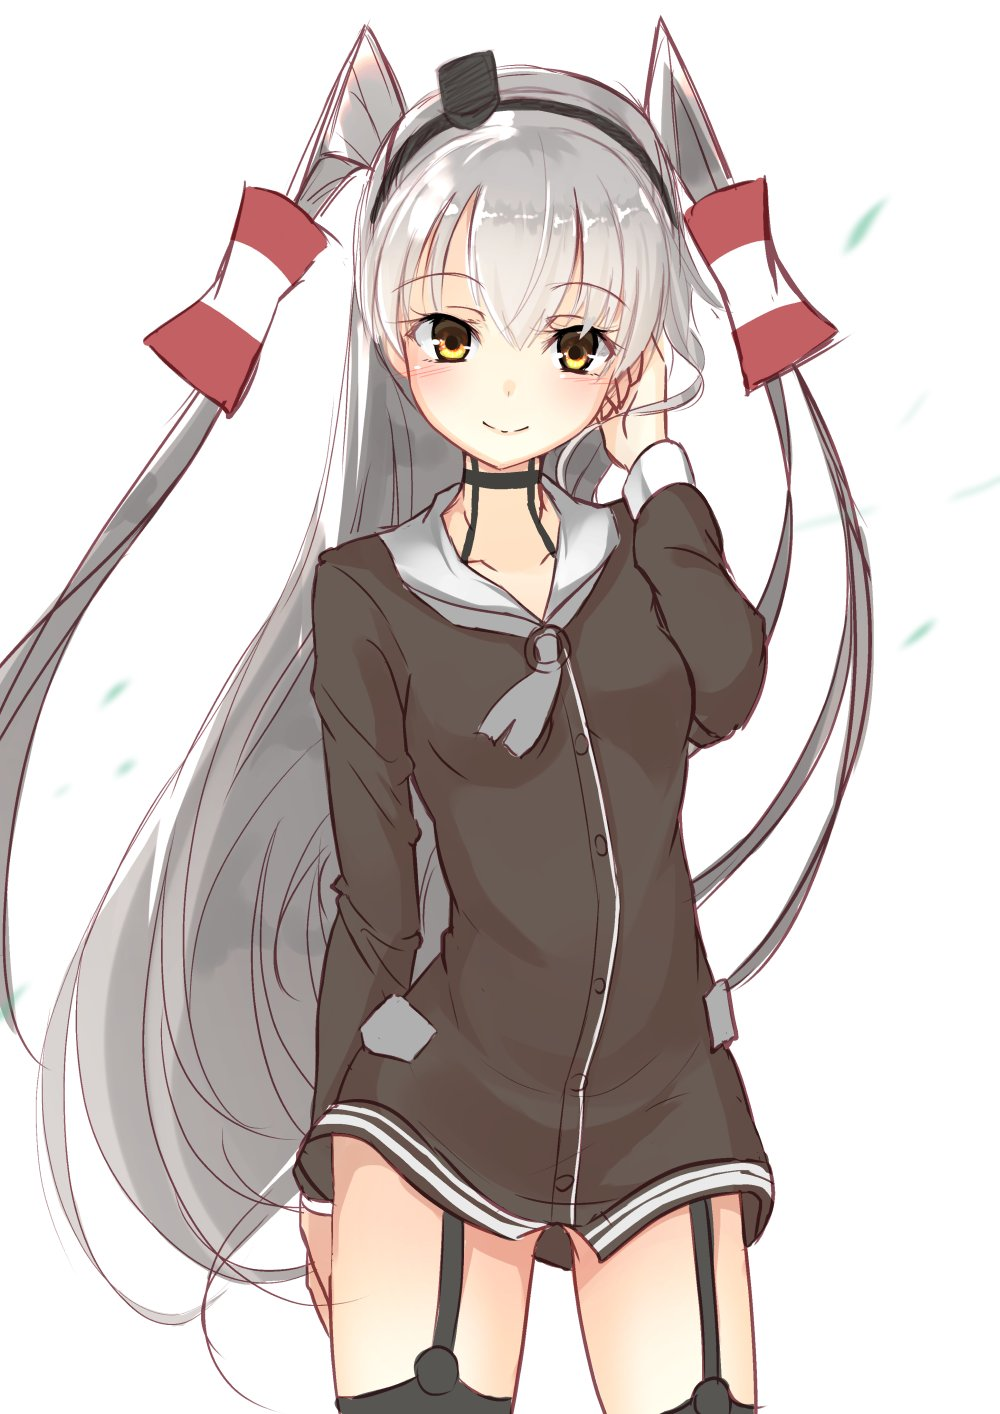 1girl amatsukaze_(kantai_collection) brown_dress brown_eyes cowboy_shot dress garter_straps hair_tubes hand_in_hair highres inu3 kantai_collection long_hair looking_at_viewer sailor_dress silver_hair simple_background smile solo two_side_up very_long_hair white_background